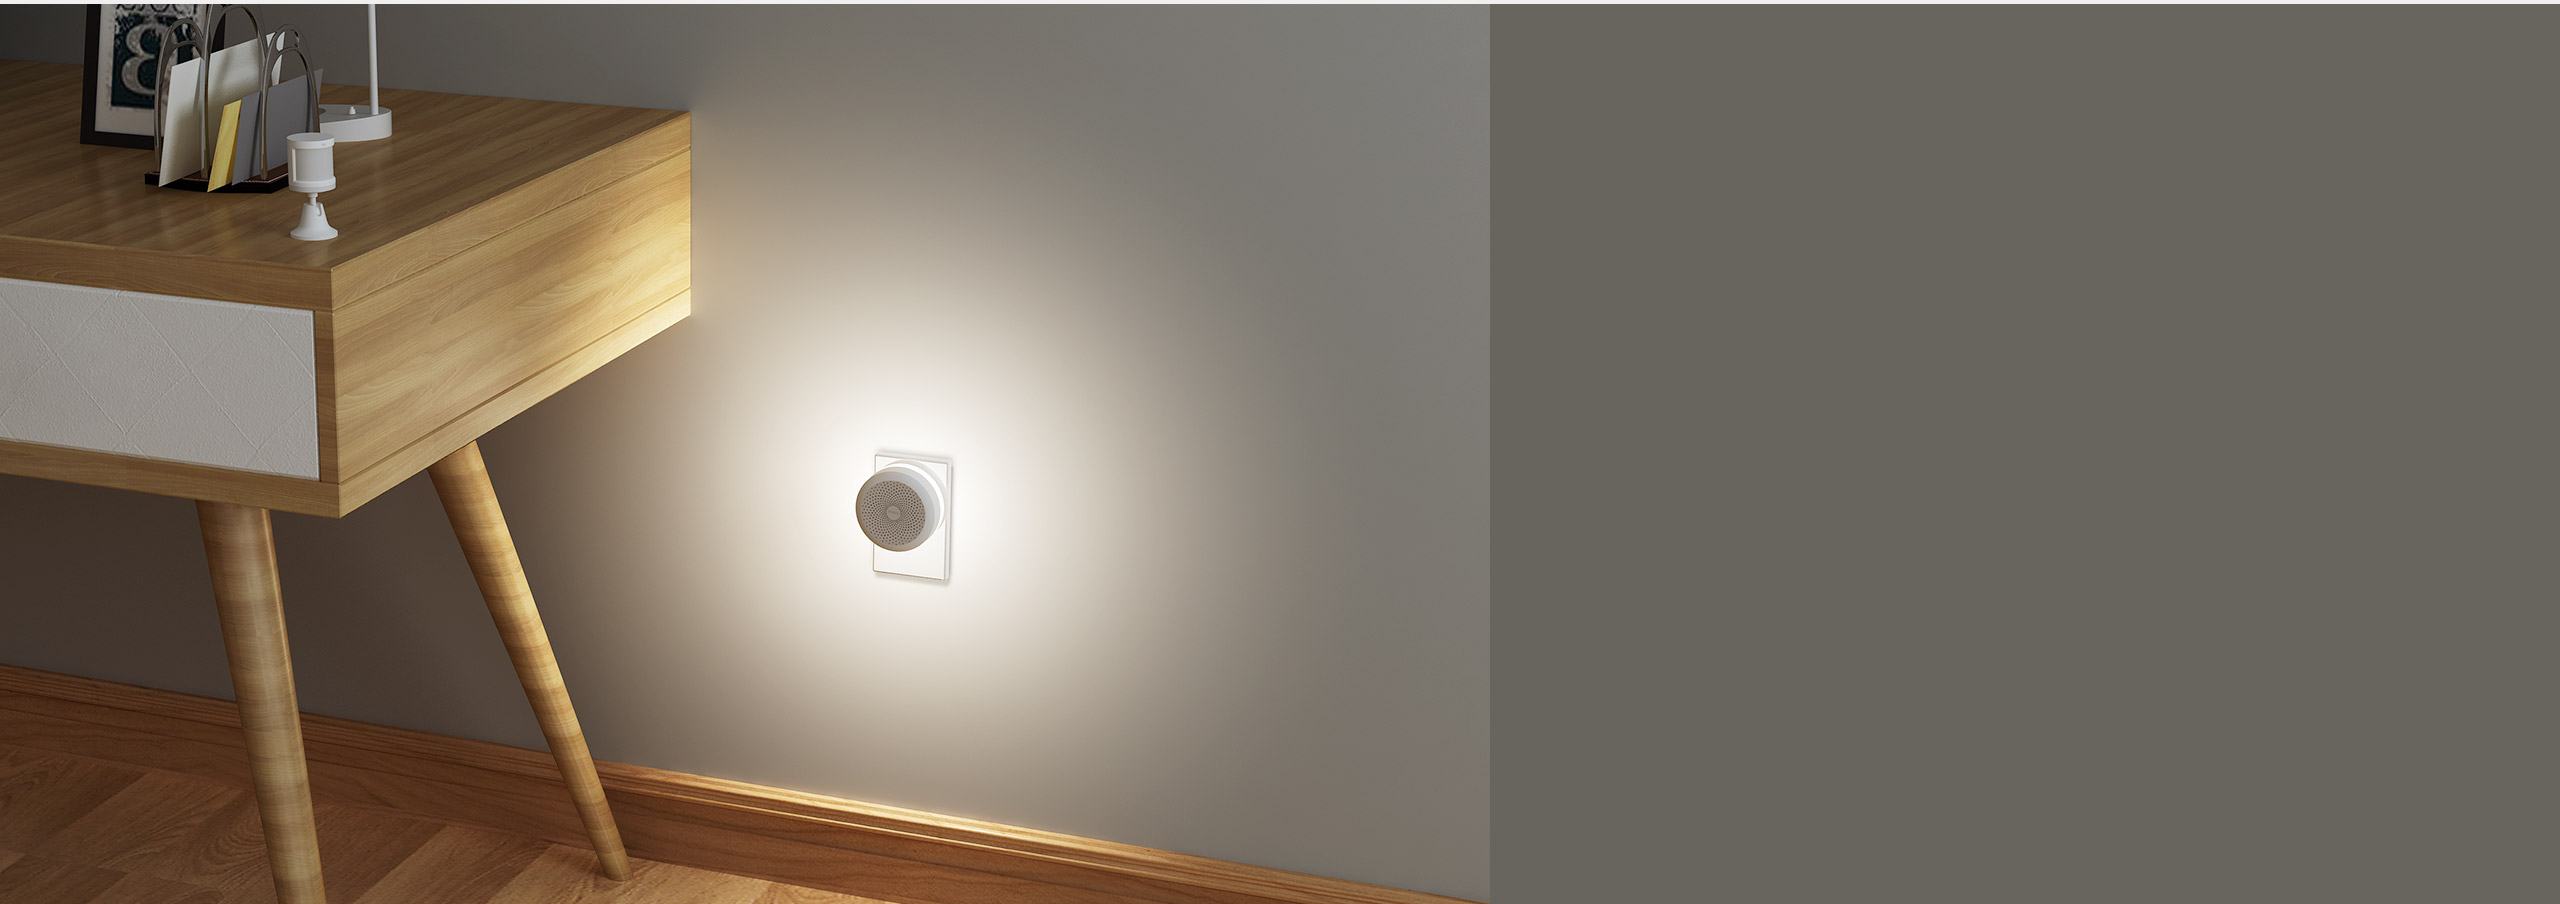 smart night light by using Aqara smart motion sensor and Aqara hub